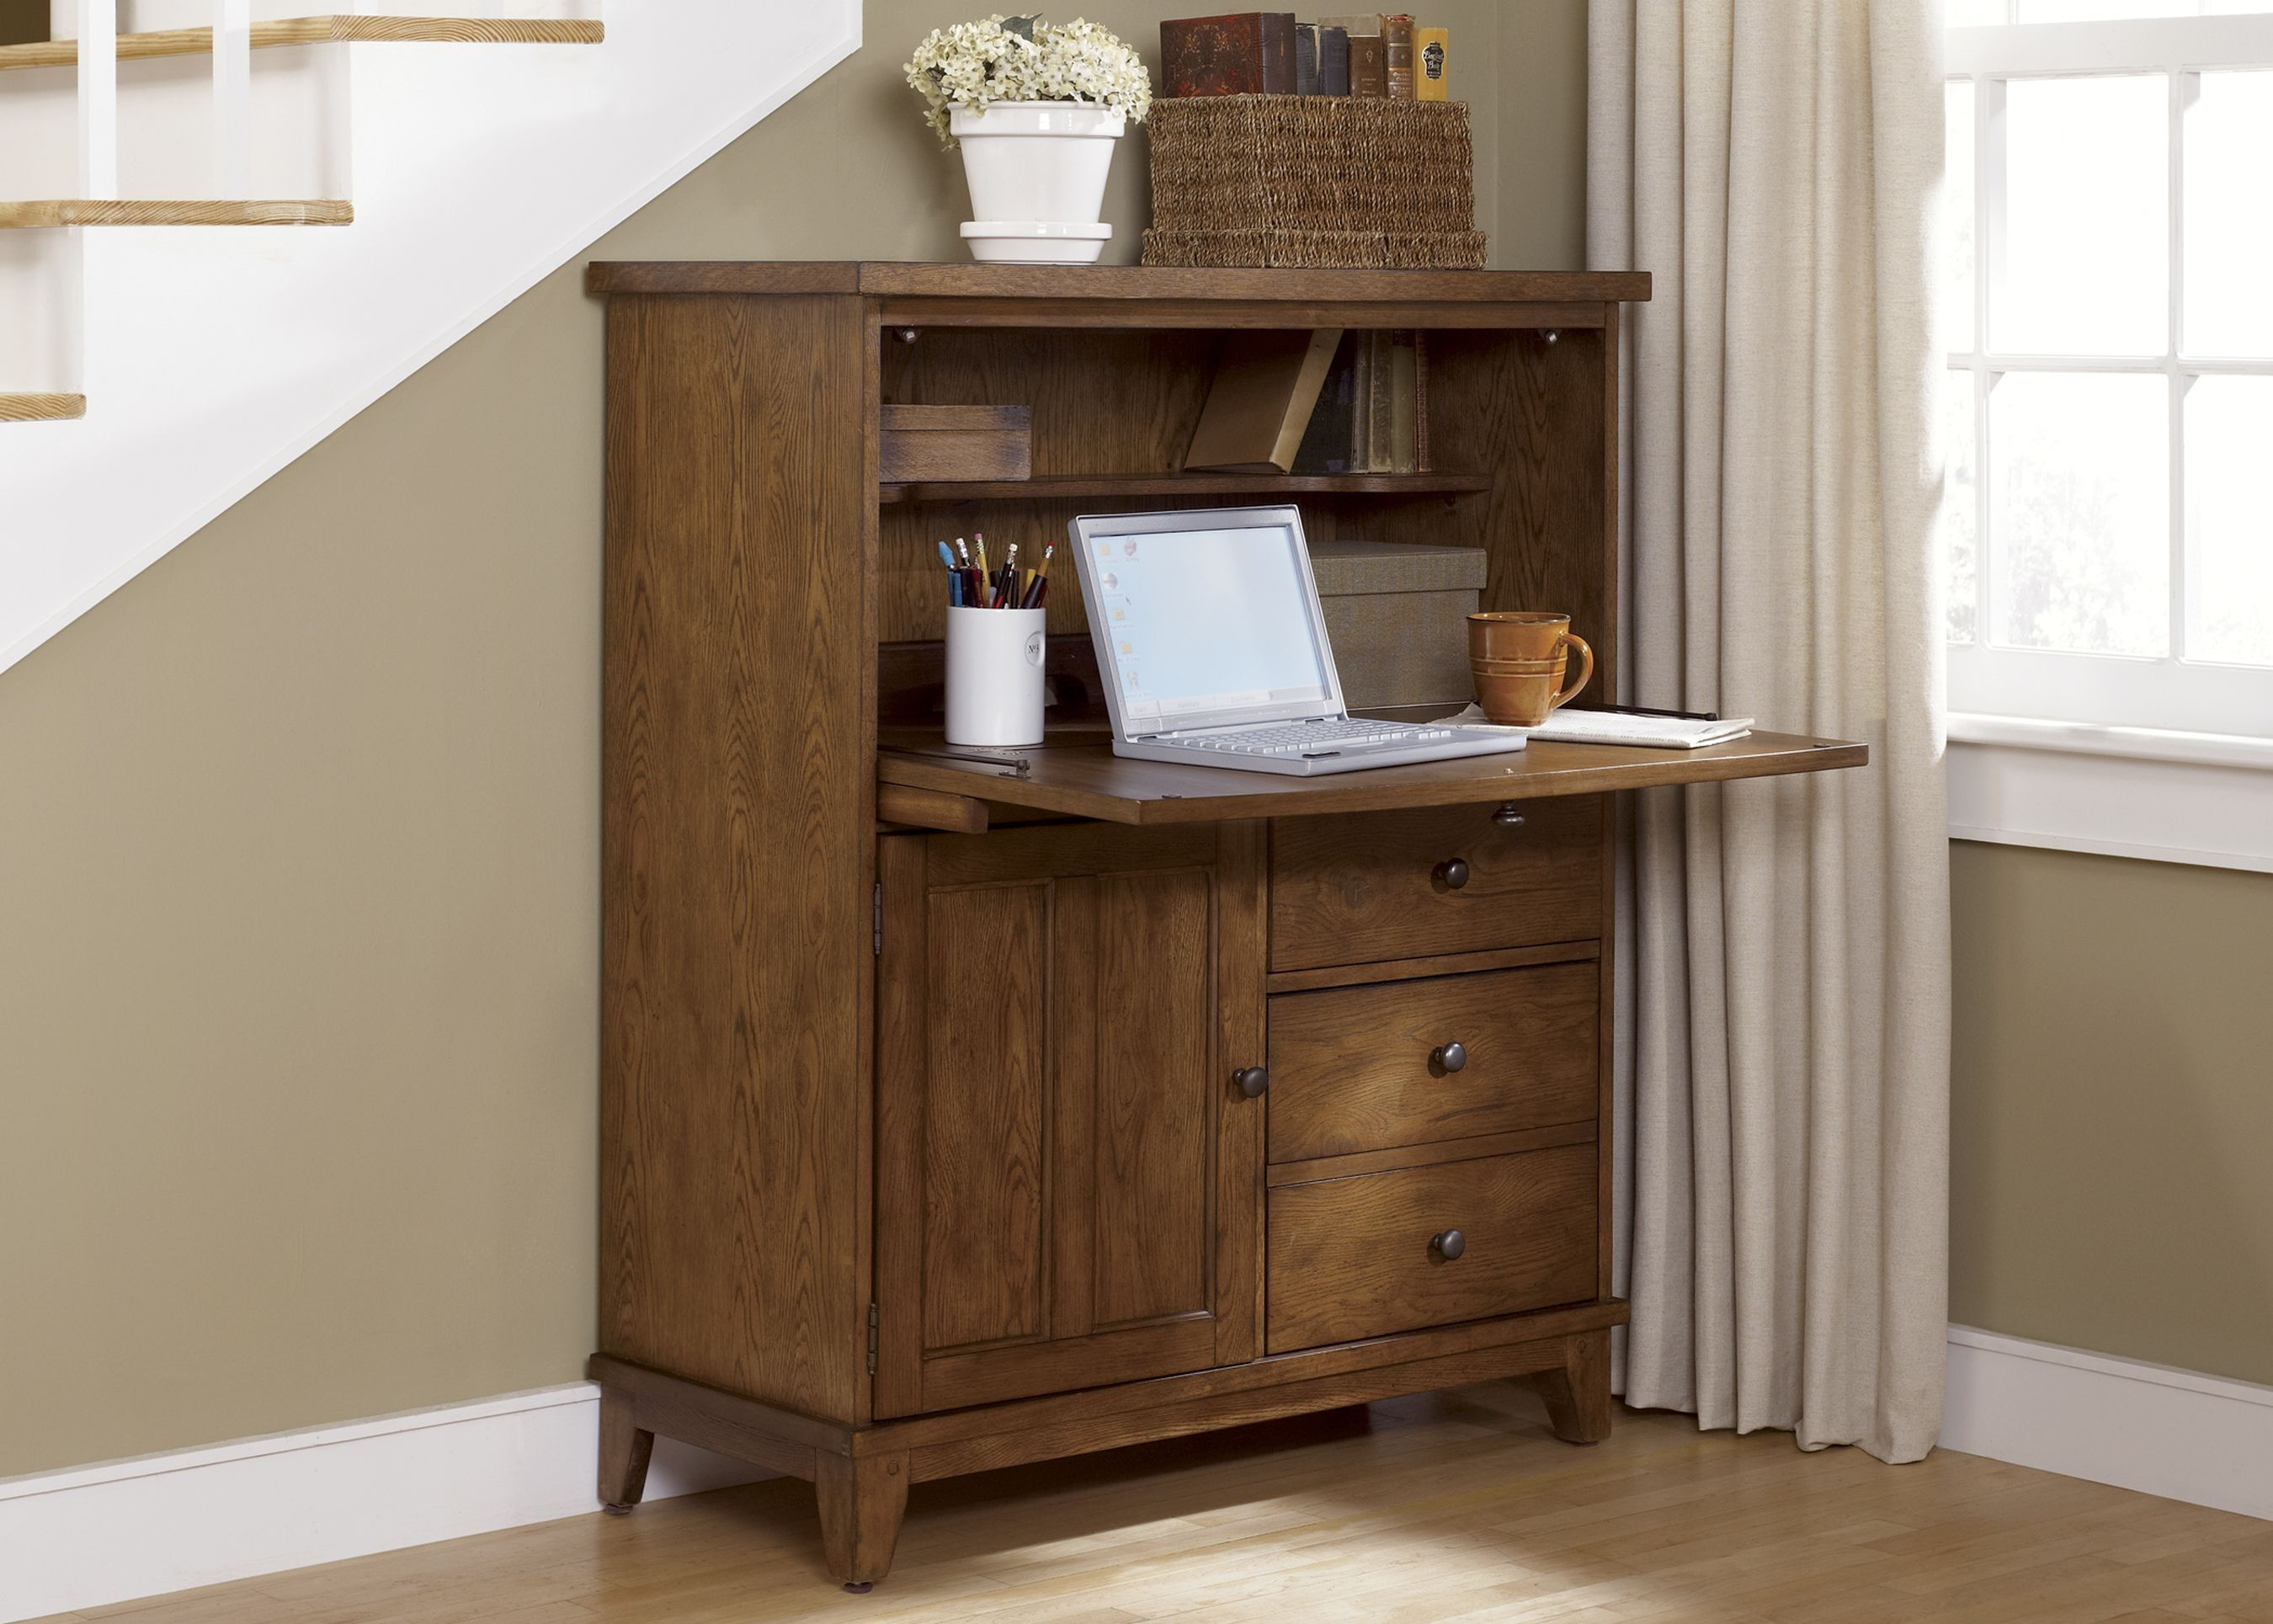 Liberty Hearthstone Computer Cabinet 382 Ho108 By Liberty Furniture For $76751